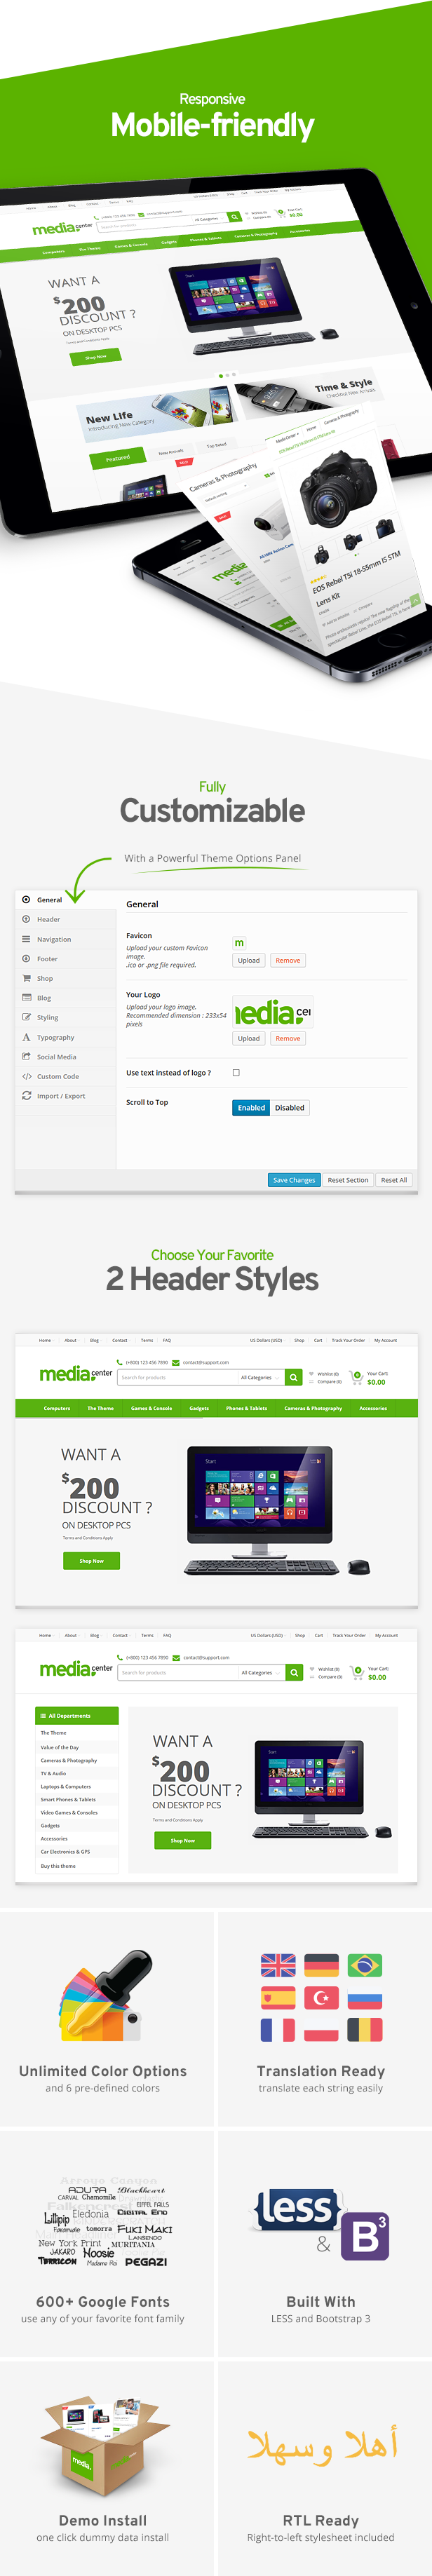 mobile friendly and fully customizable - MediaCenter - Electronics Store WooCommerce Theme